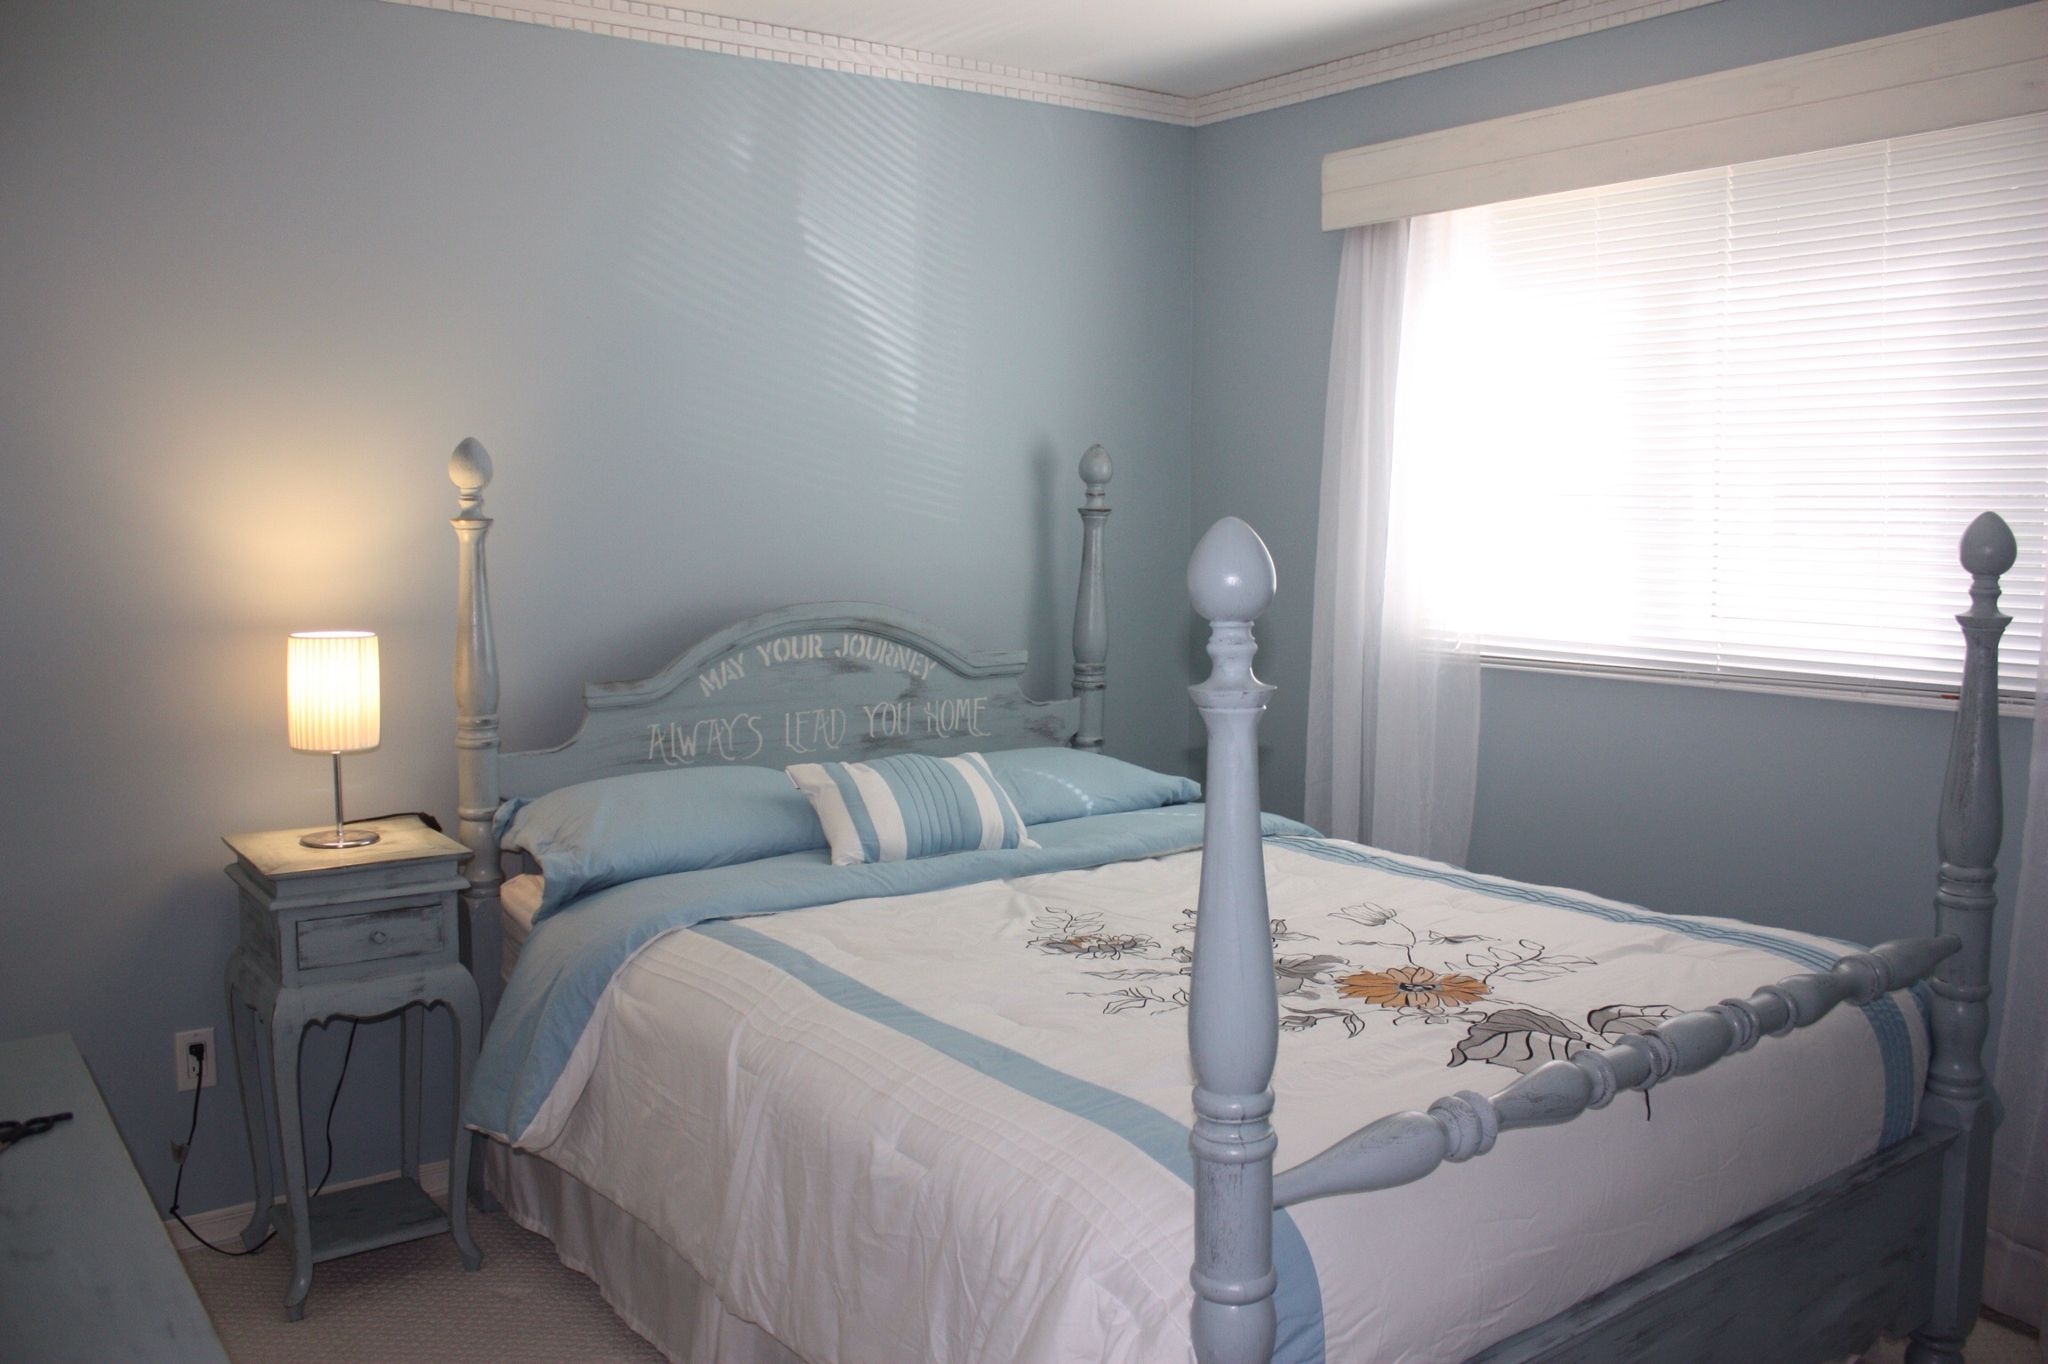 I painted this spare bed and dresser in Benjamin Moore cottage paint it was easy and great product.